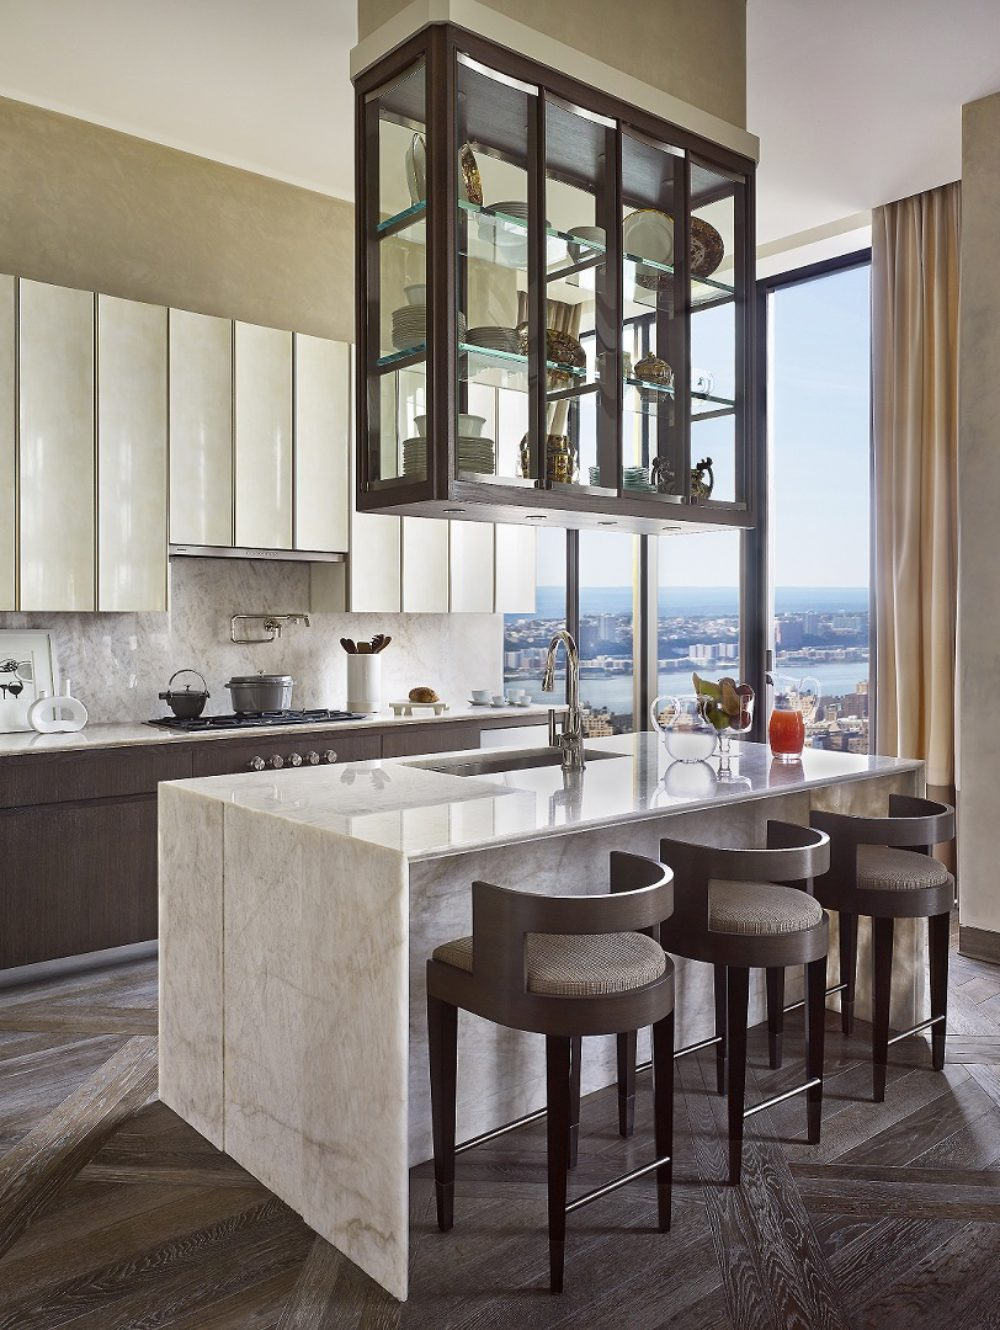 View of kitchen in 111 West 57th street condominiums with white table counters and black furniture with a window view of NYC.